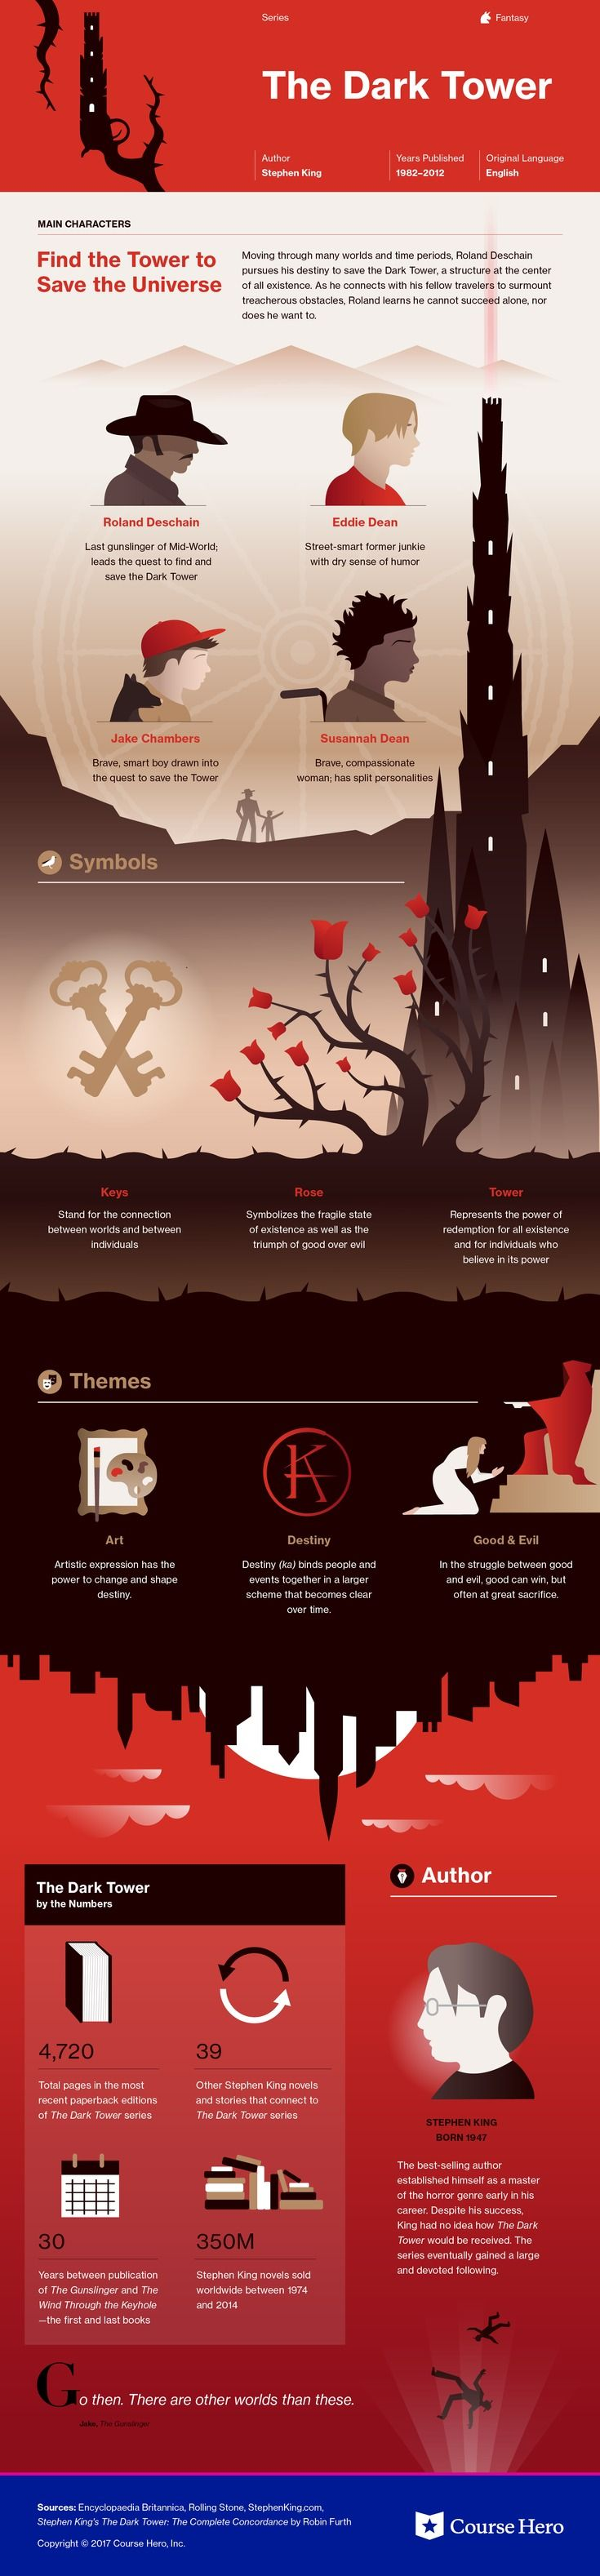 This @CourseHero infographic on The Dark Tower Series is both visually stunning and informative!